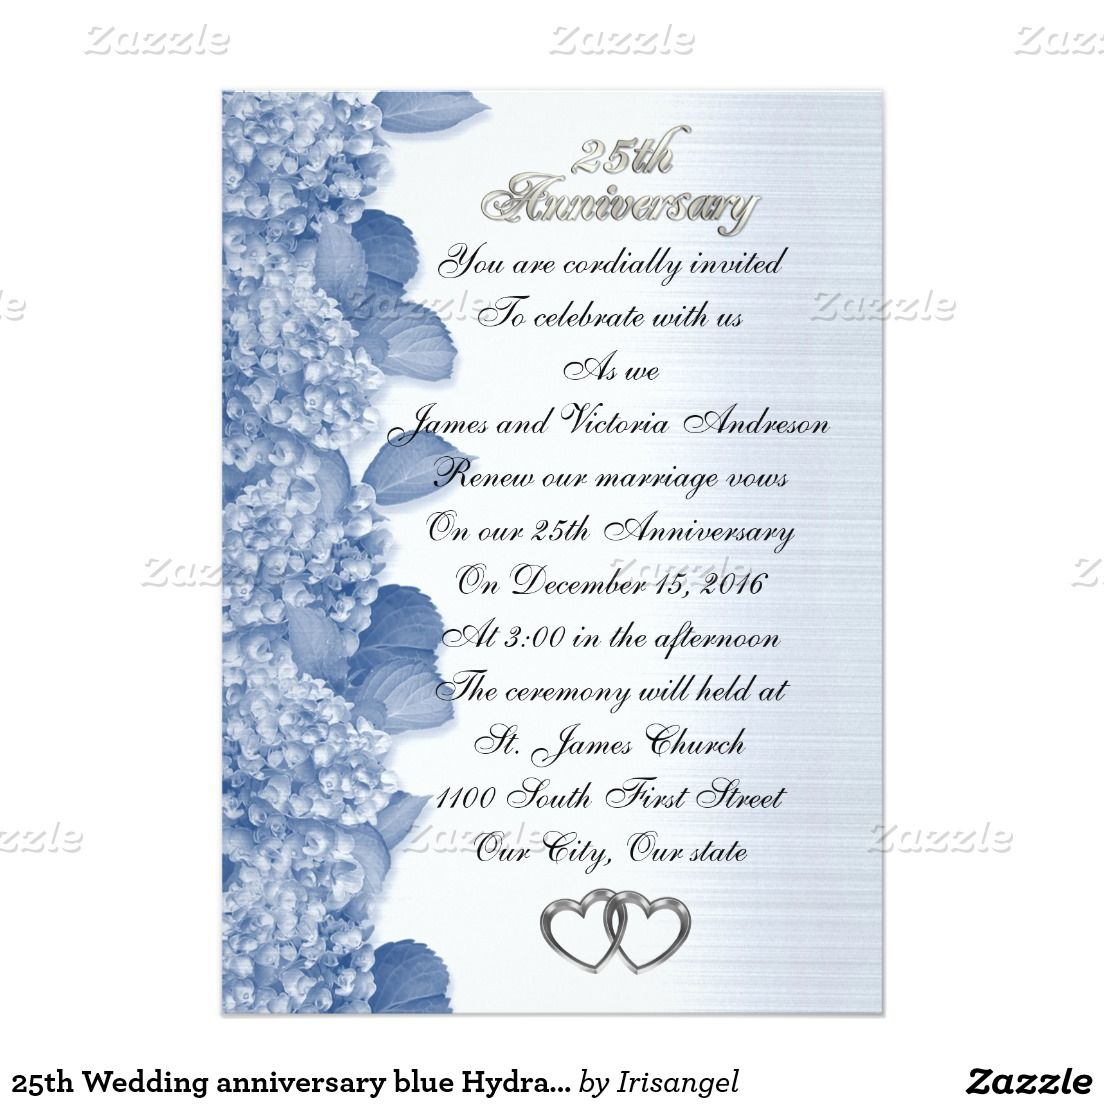 25th Wedding anniversary blue Hydrangea Invitation | Pinterest | 25 ...